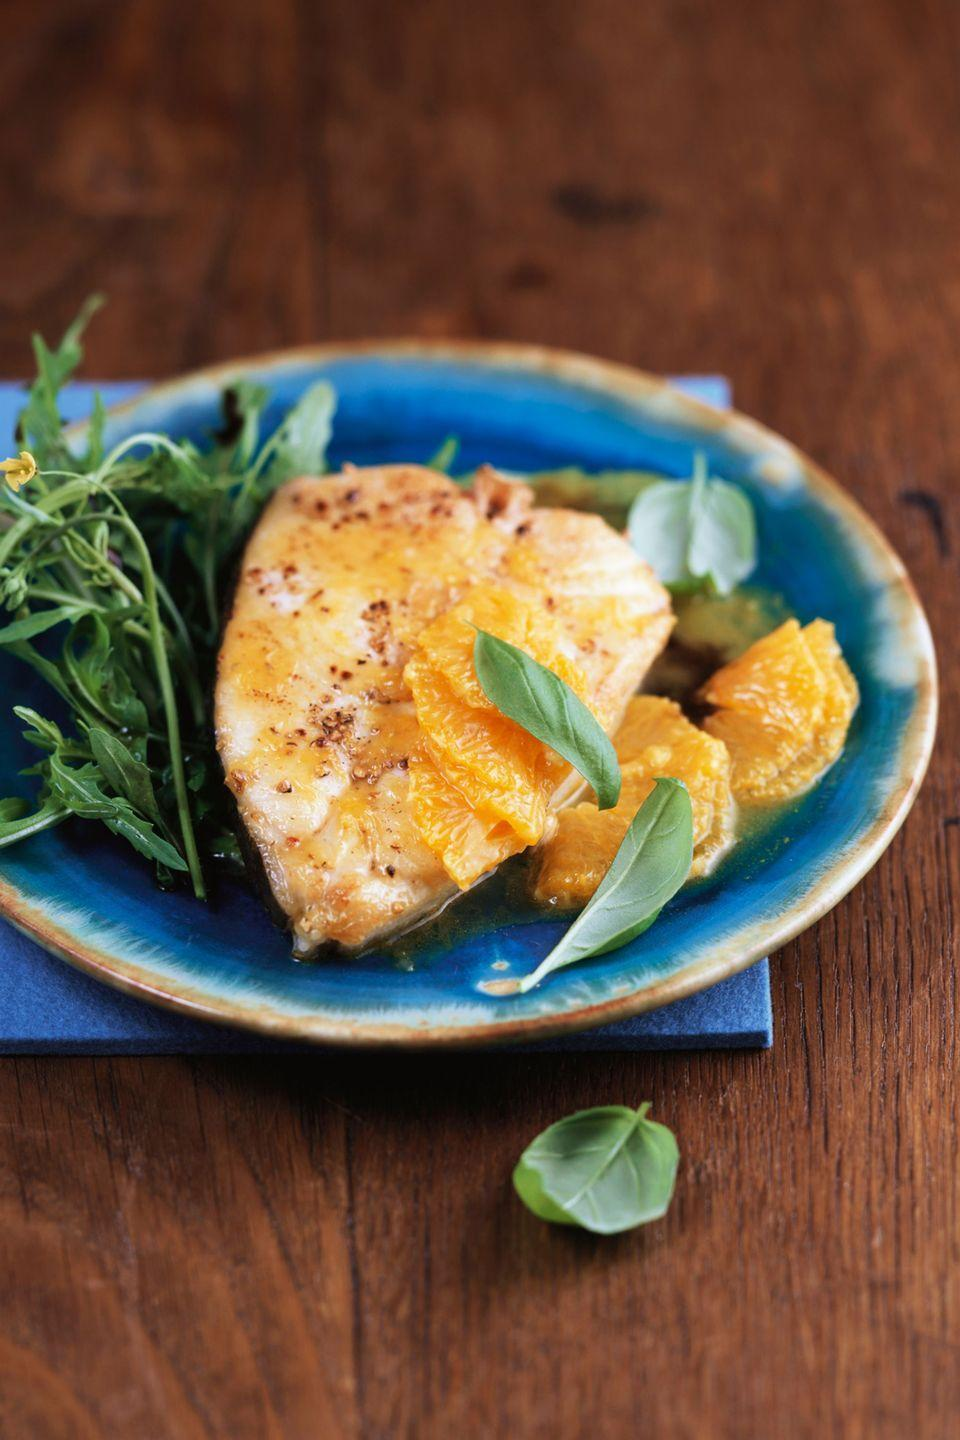 "<p>Since it's packed with protein and under 300 calories, it's hard to find a recipe that's more filling and delicious.</p><p><a href=""https://www.womansday.com/food-recipes/food-drinks/recipes/a10276/roasted-halibut-orange-salsa-121582/"" rel=""nofollow noopener"" target=""_blank"" data-ylk=""slk:Get the Halibut with Spinach, Oranges and Olives recipe."" class=""link rapid-noclick-resp""><em><strong>Get the Halibut with Spinach, Oranges and Olives recipe.</strong></em></a></p>"